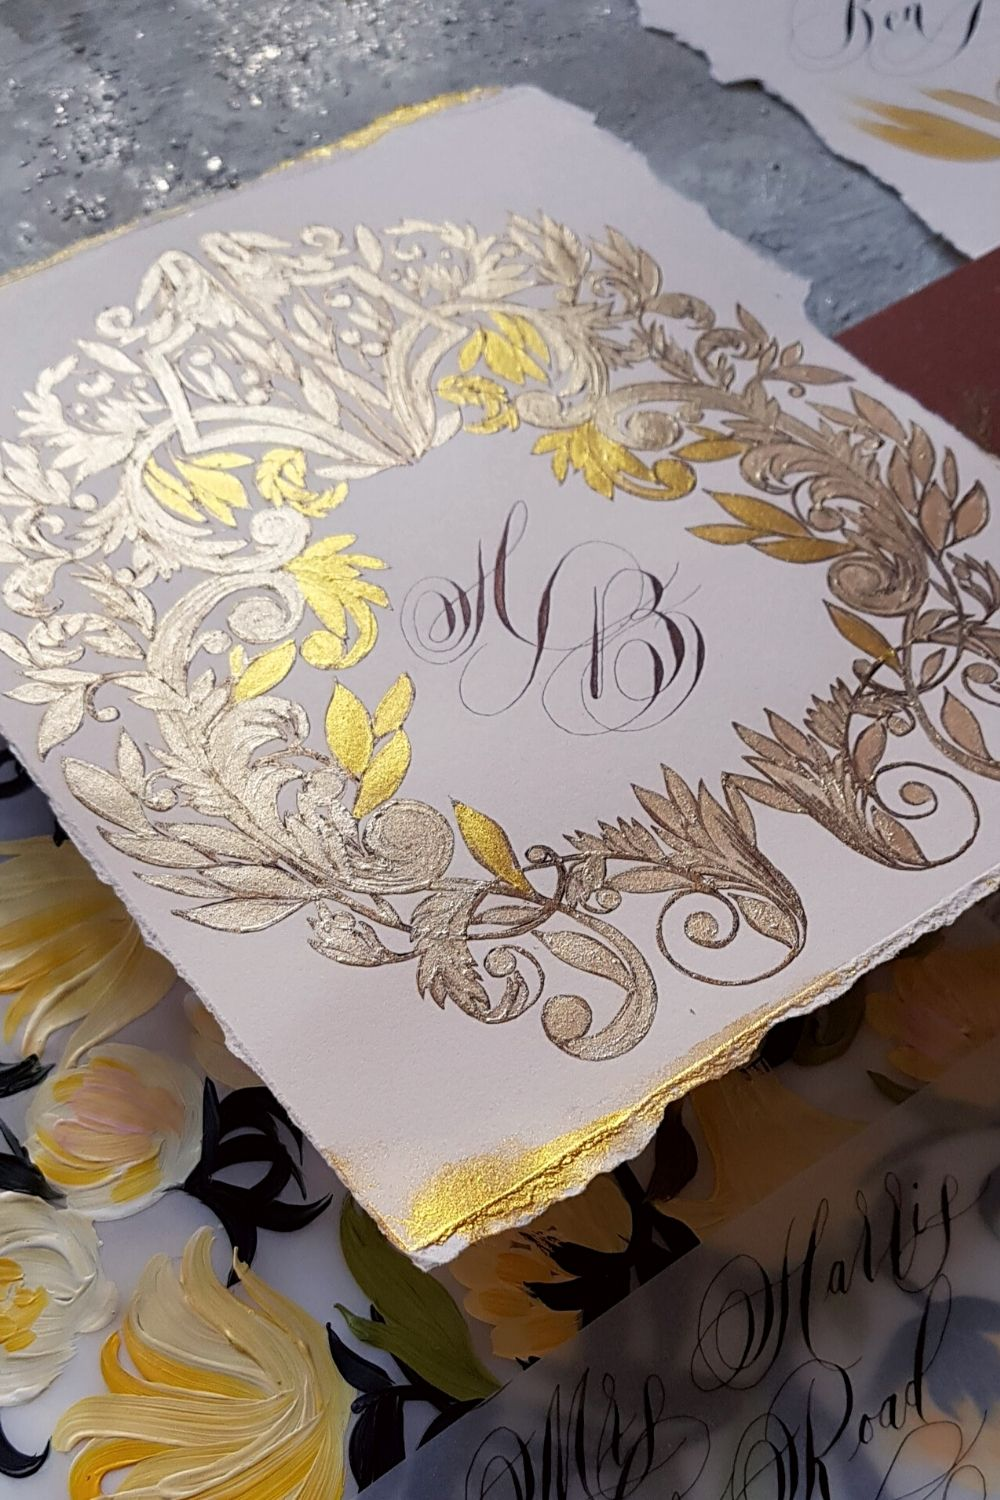 Luxury wedding invitations with rich gold and walnut brown, ornate custom crest design and a floral envelope for an Italian wedding